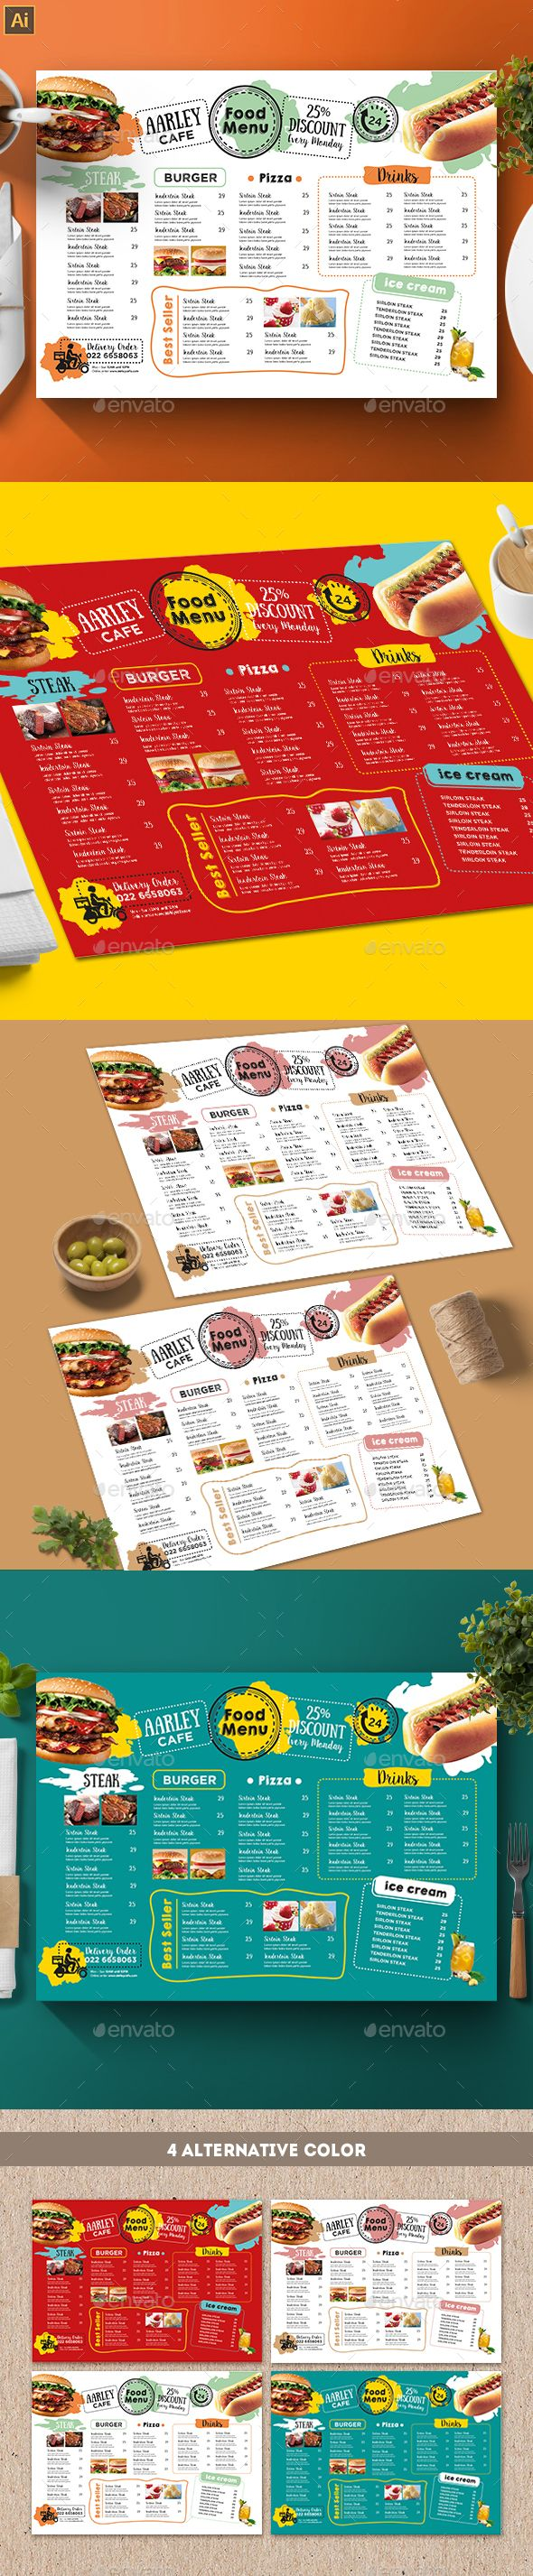 Cafe Menu Template — Vector EPS #menu #drink • Available here ➝ https://graphicriver.net/item/cafe-menu-template/20929648?ref=pxcr